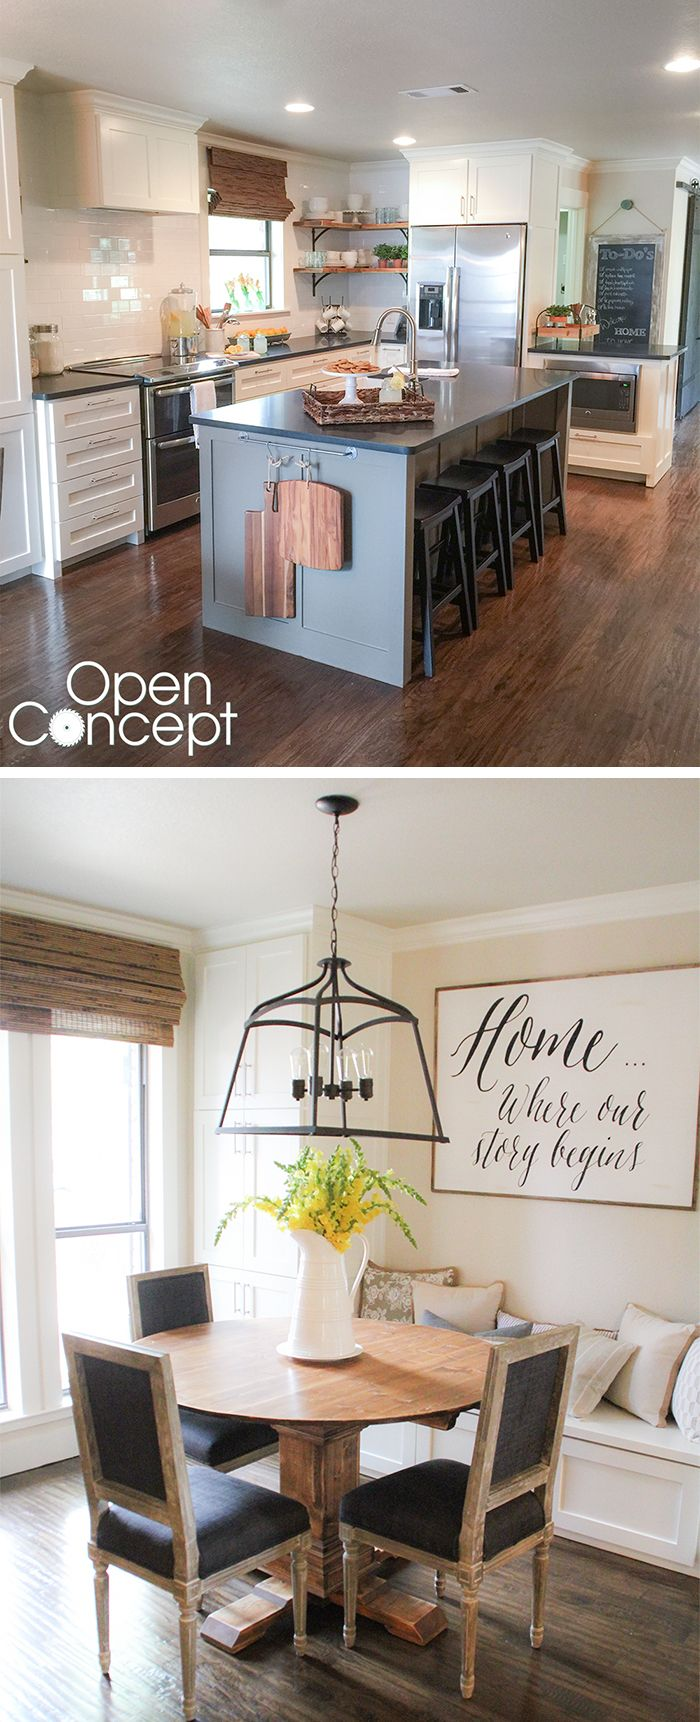 best 10 kitchen layout diy ideas on pinterest little kitchen after shots of the kitchen makeover in hgtv s open concept lot s of before and after pictures of this makeover love the whole house